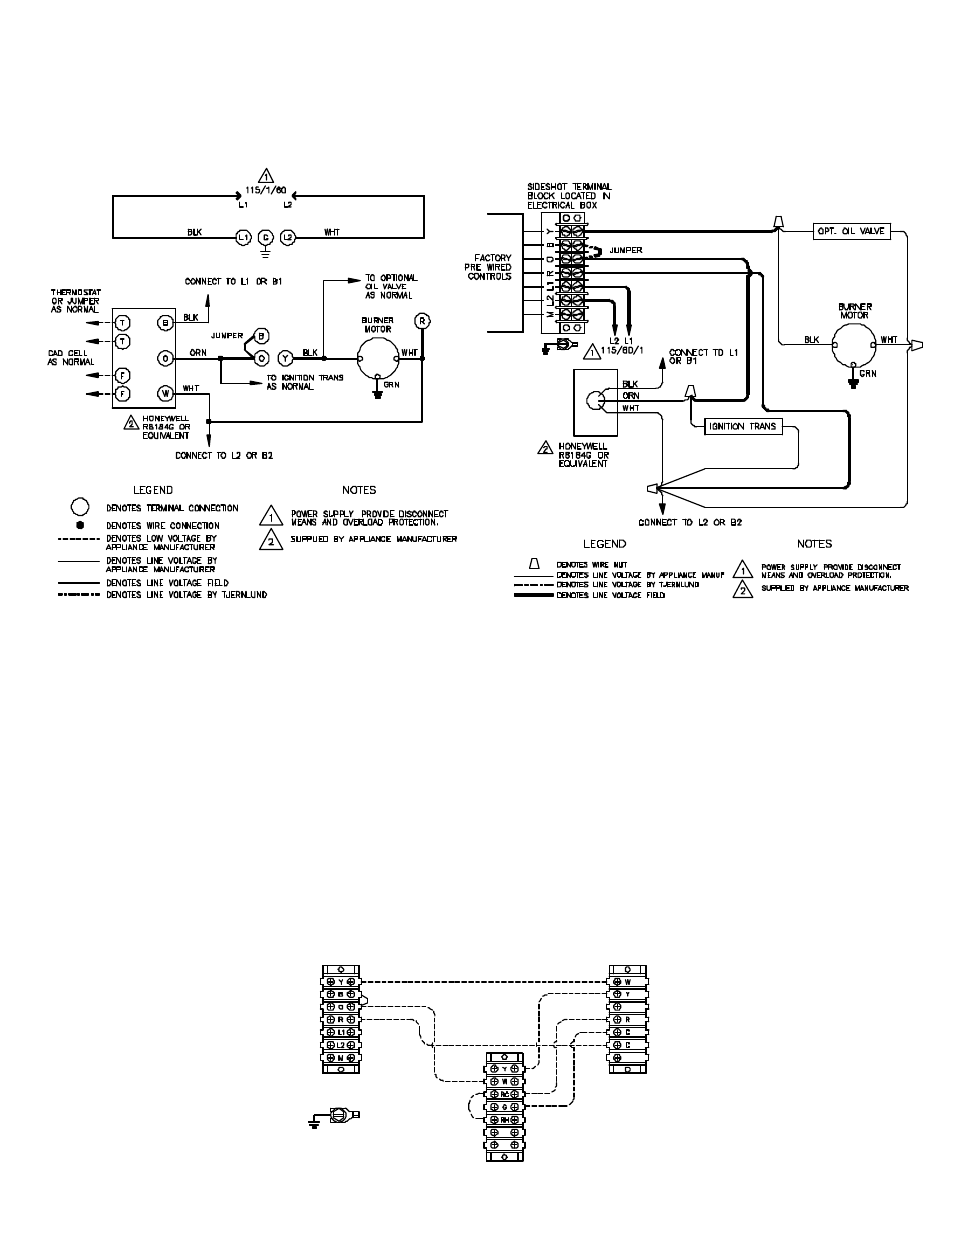 Tjernlund SS2 SideShot (Discontinued Version - Pre UC1 Universal Control)  8504063 Rev B 11/99 User Manual | Page 11 / 18